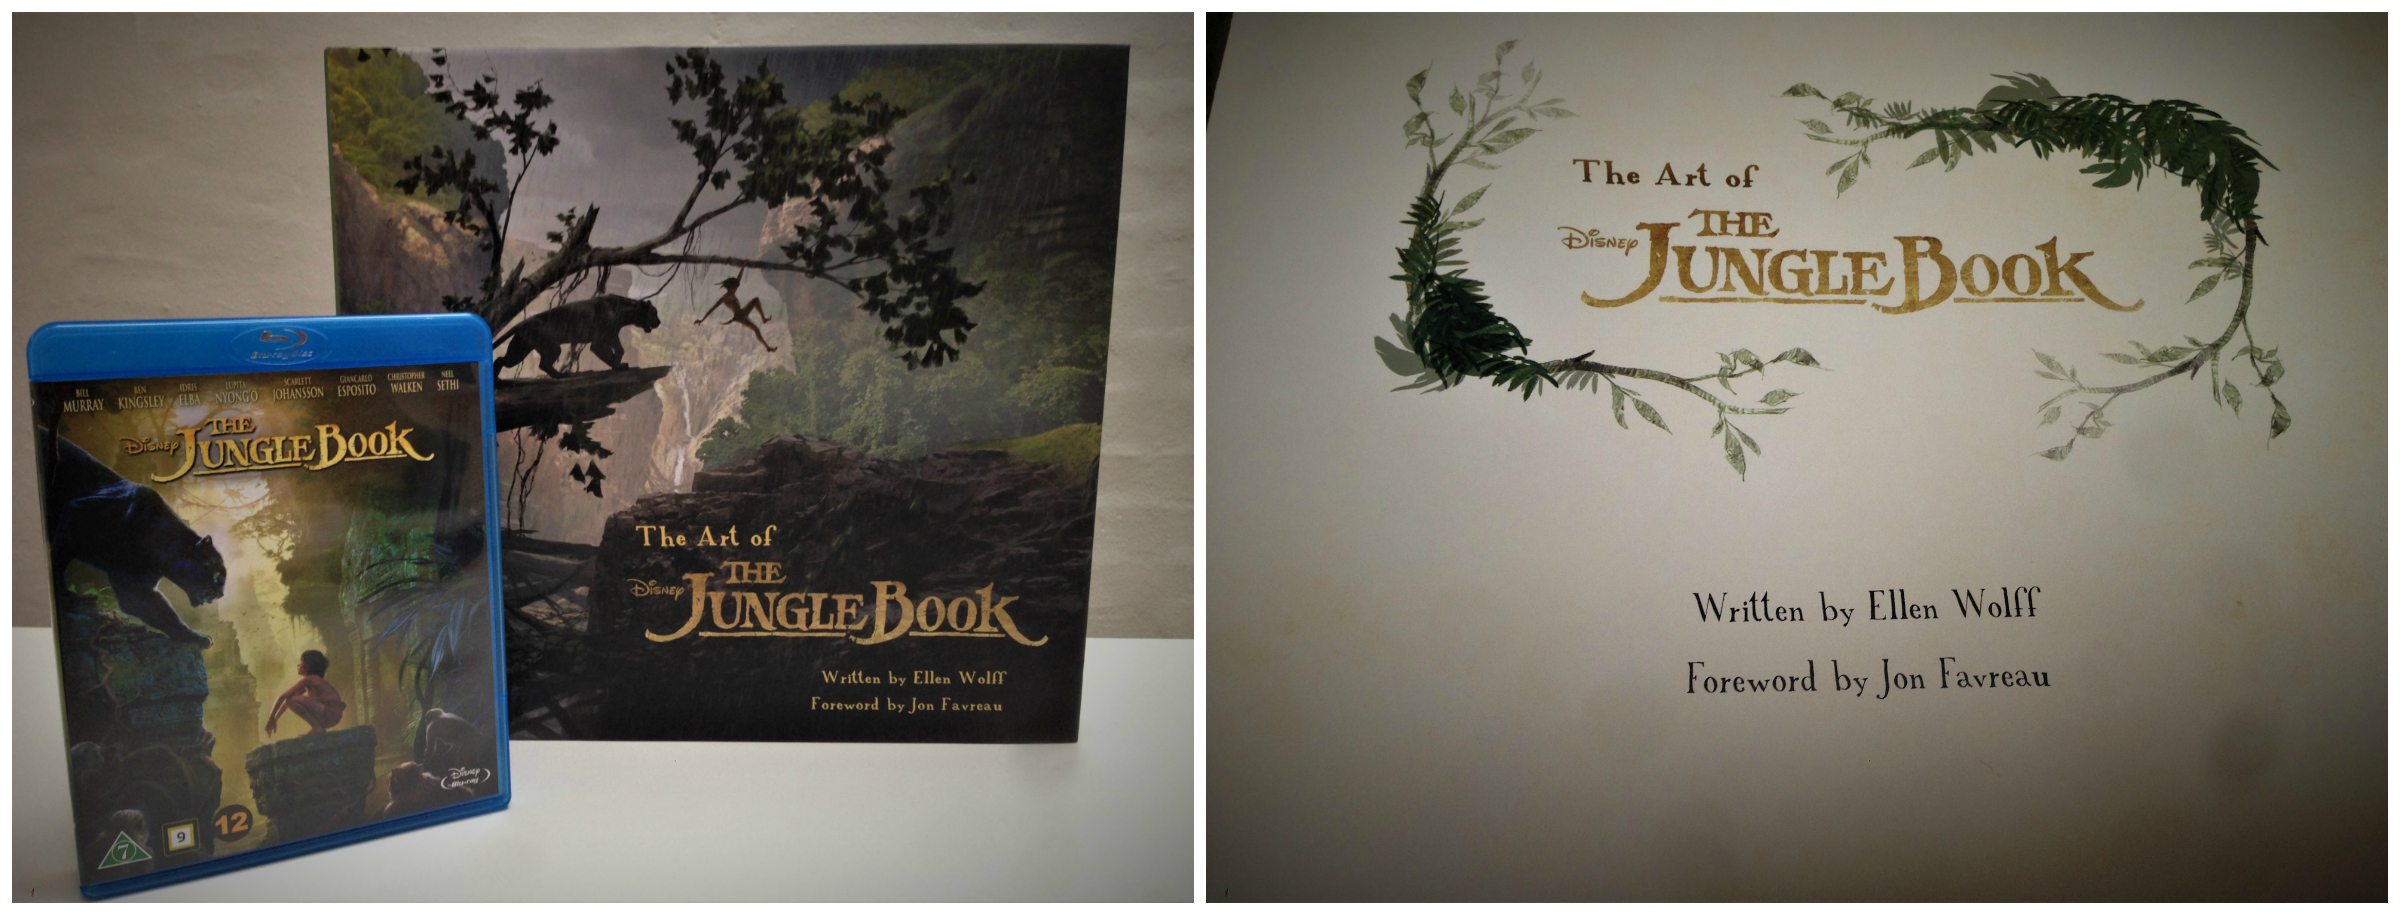 The Art of the JungleBook - Disney - Titan Books - Jon Favreau - Fiktion & Kultur - The Jungle Book - Junglebogen - Elen Wolff (6)